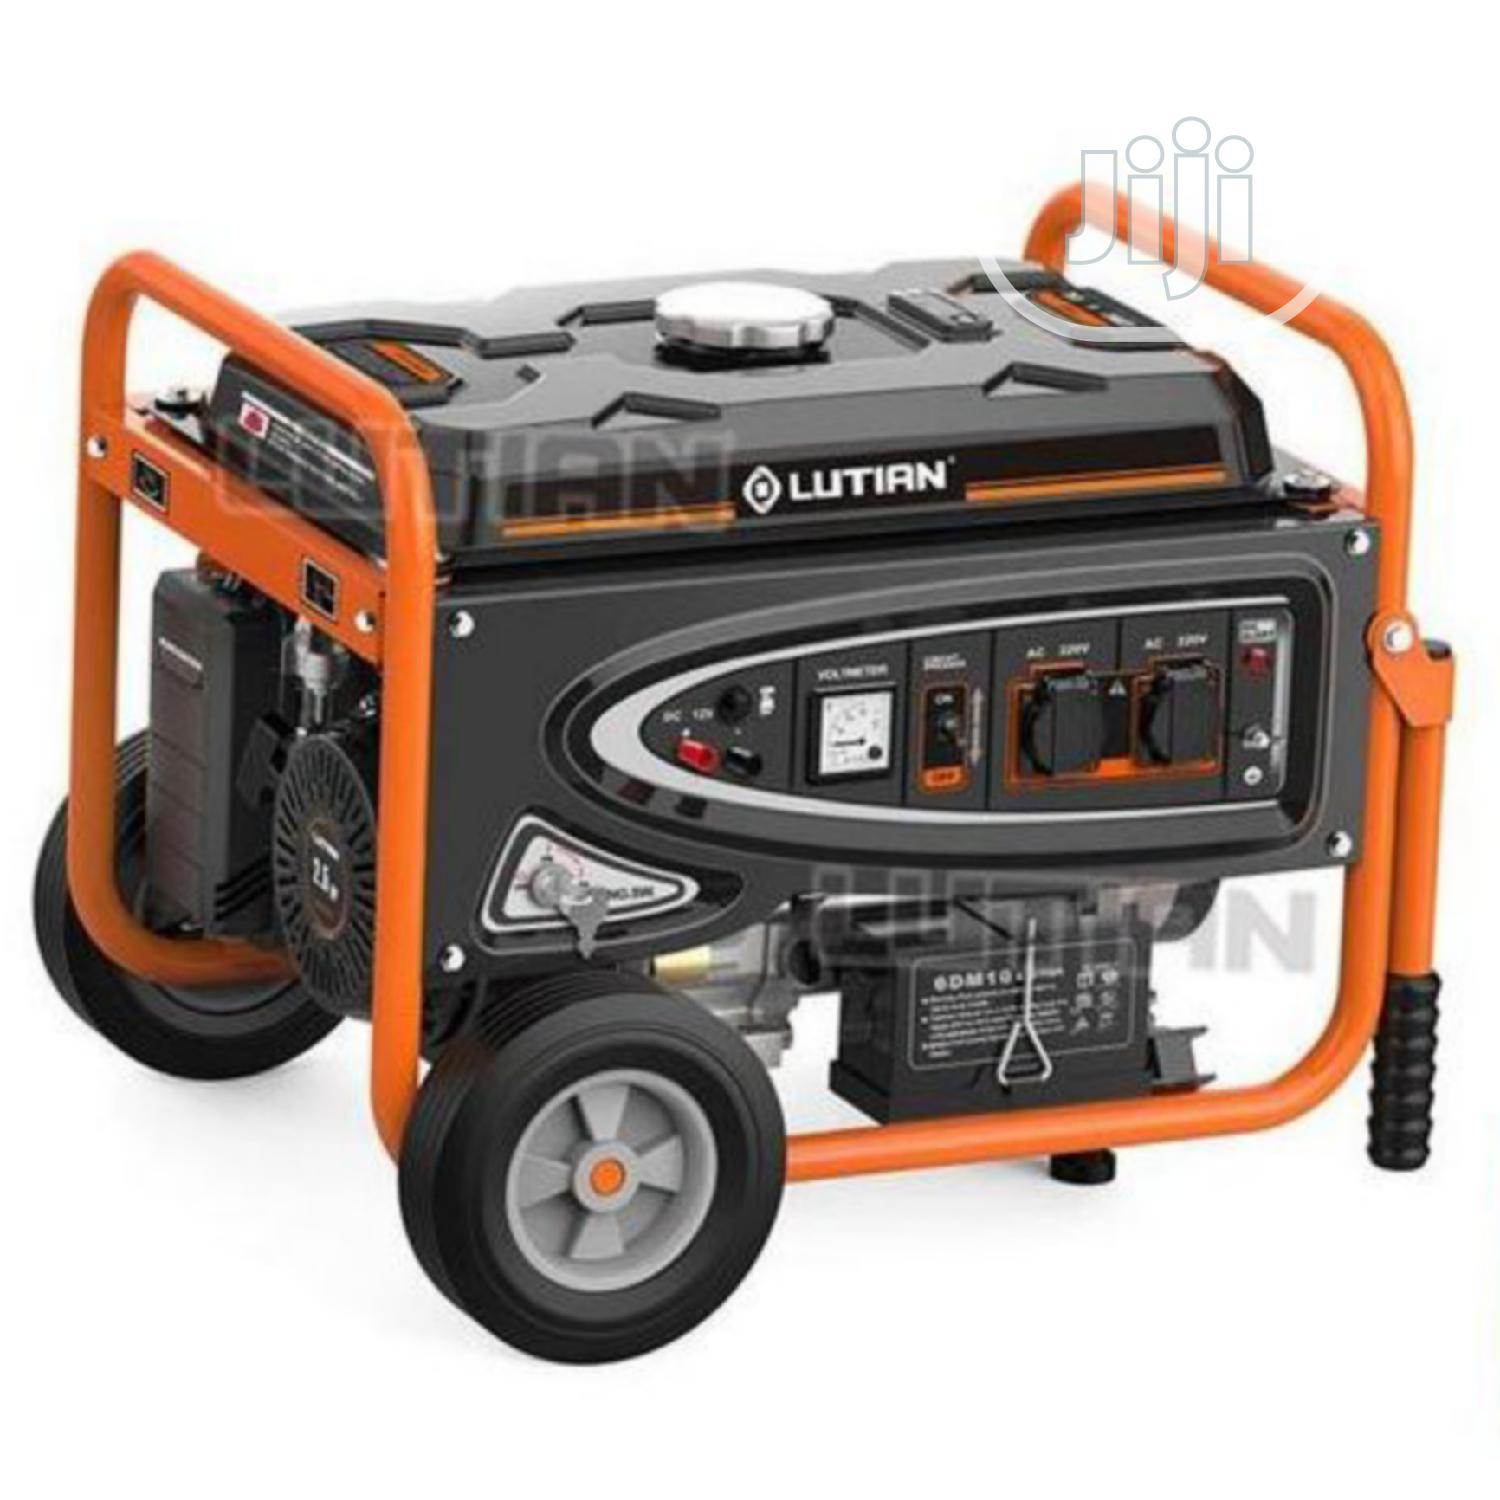 Lutian LT3900EN 3.8KVA 100% Pure Copper Key Start Generator